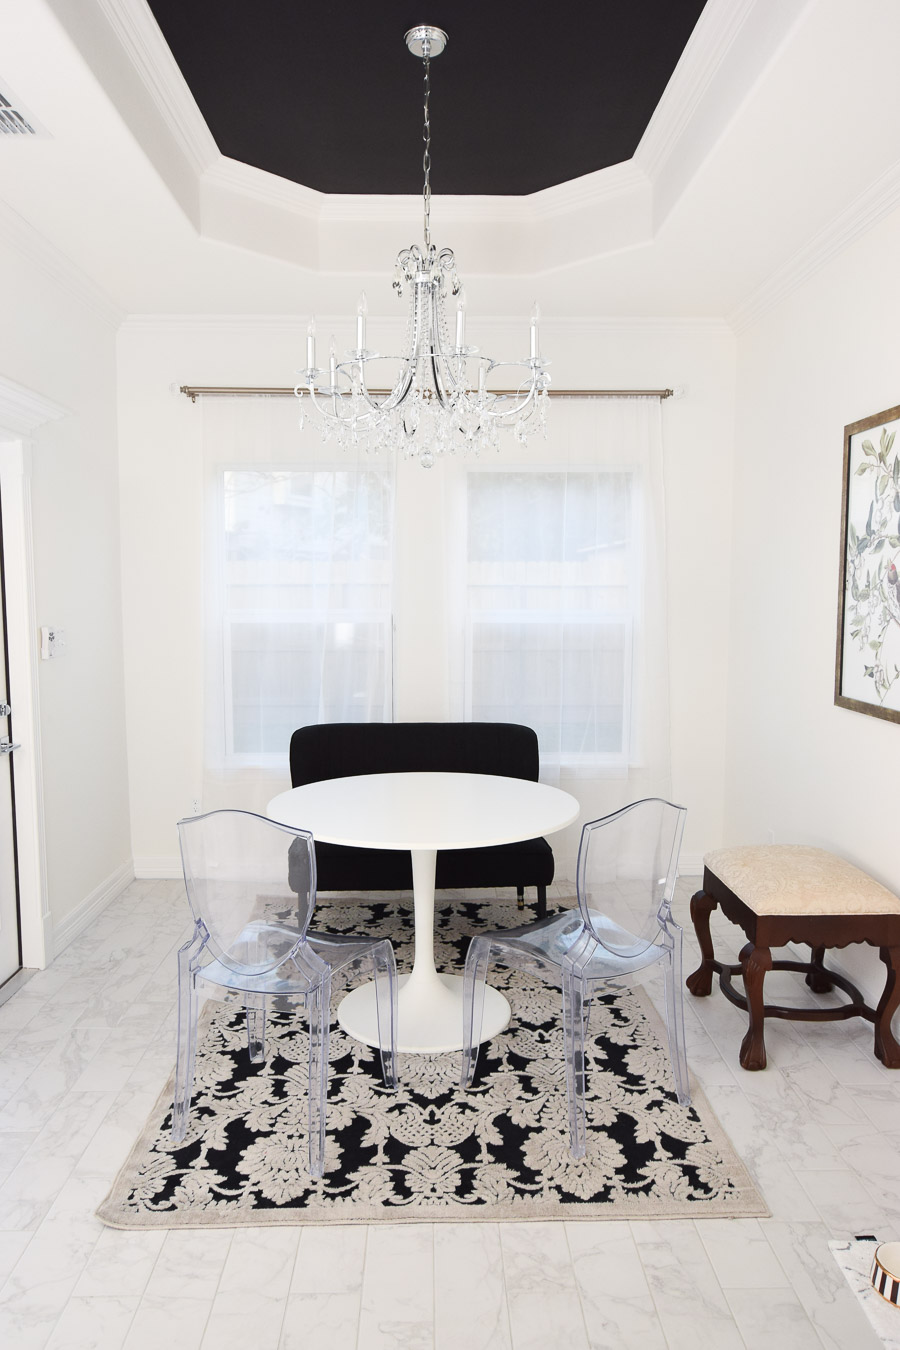 IKEA docksta table paired with ghost chairs and a small loveseat bench in a dining space.